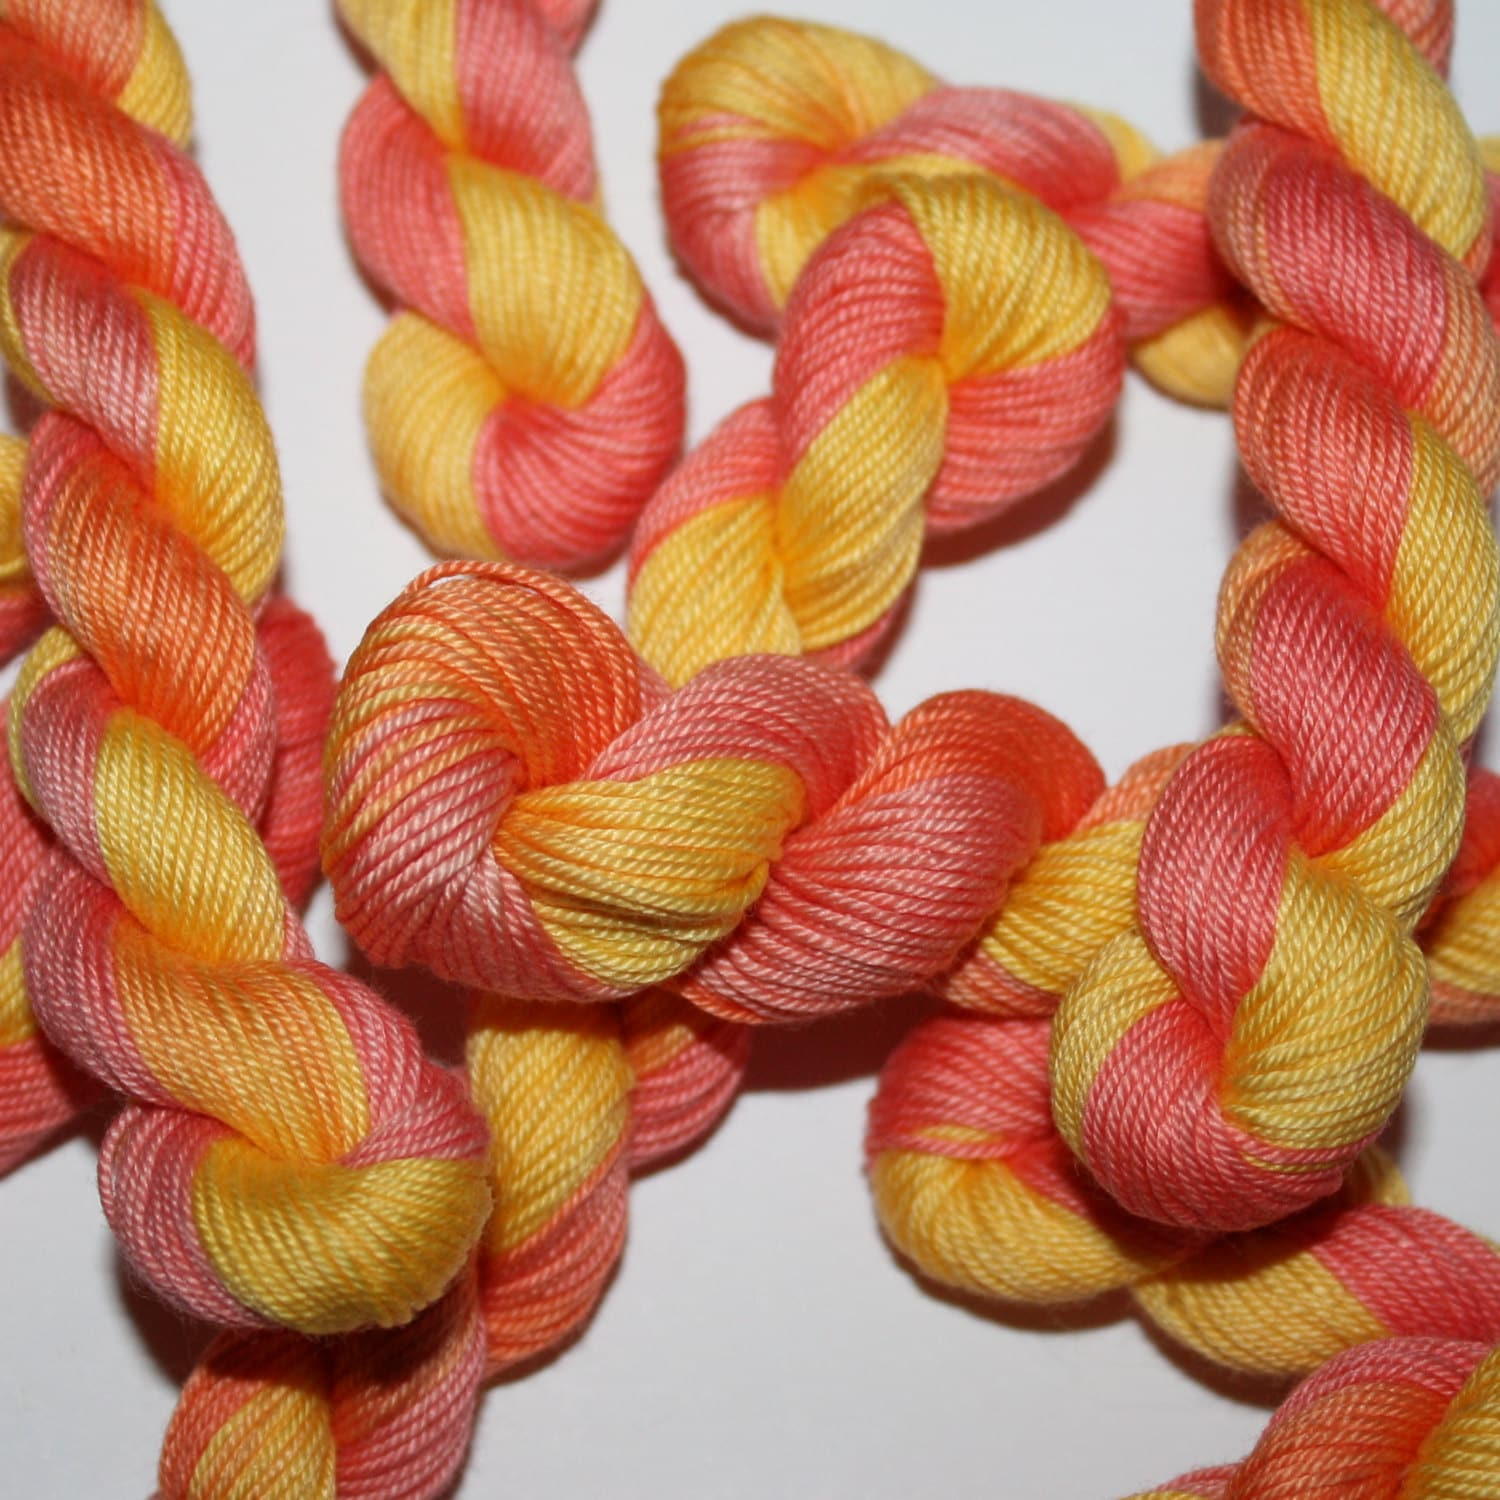 Hand embroidery thread brodery cotton yarn dyed